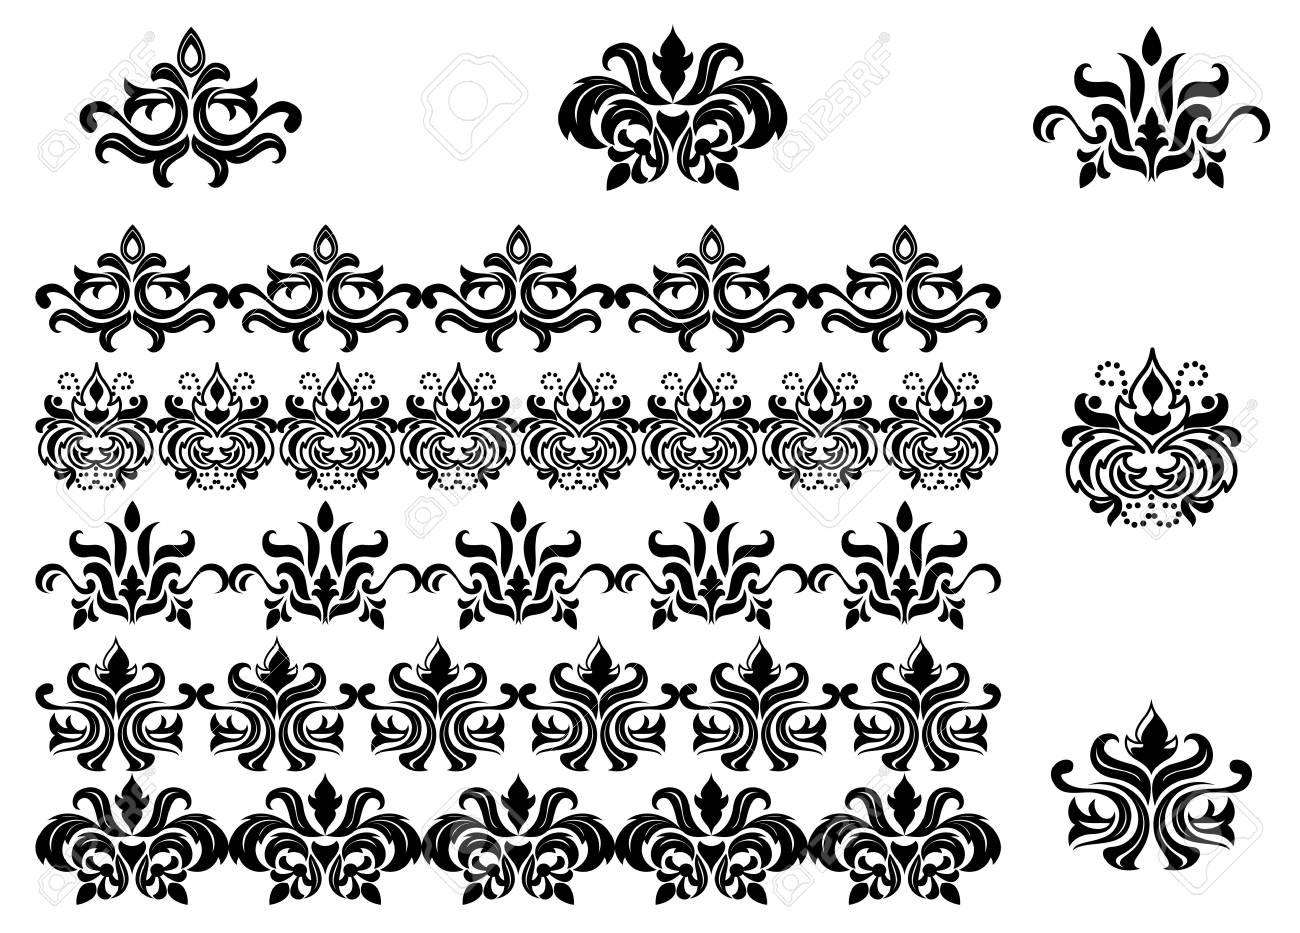 Flower patterns and borders for design and ornate Stock Photo - 6961023